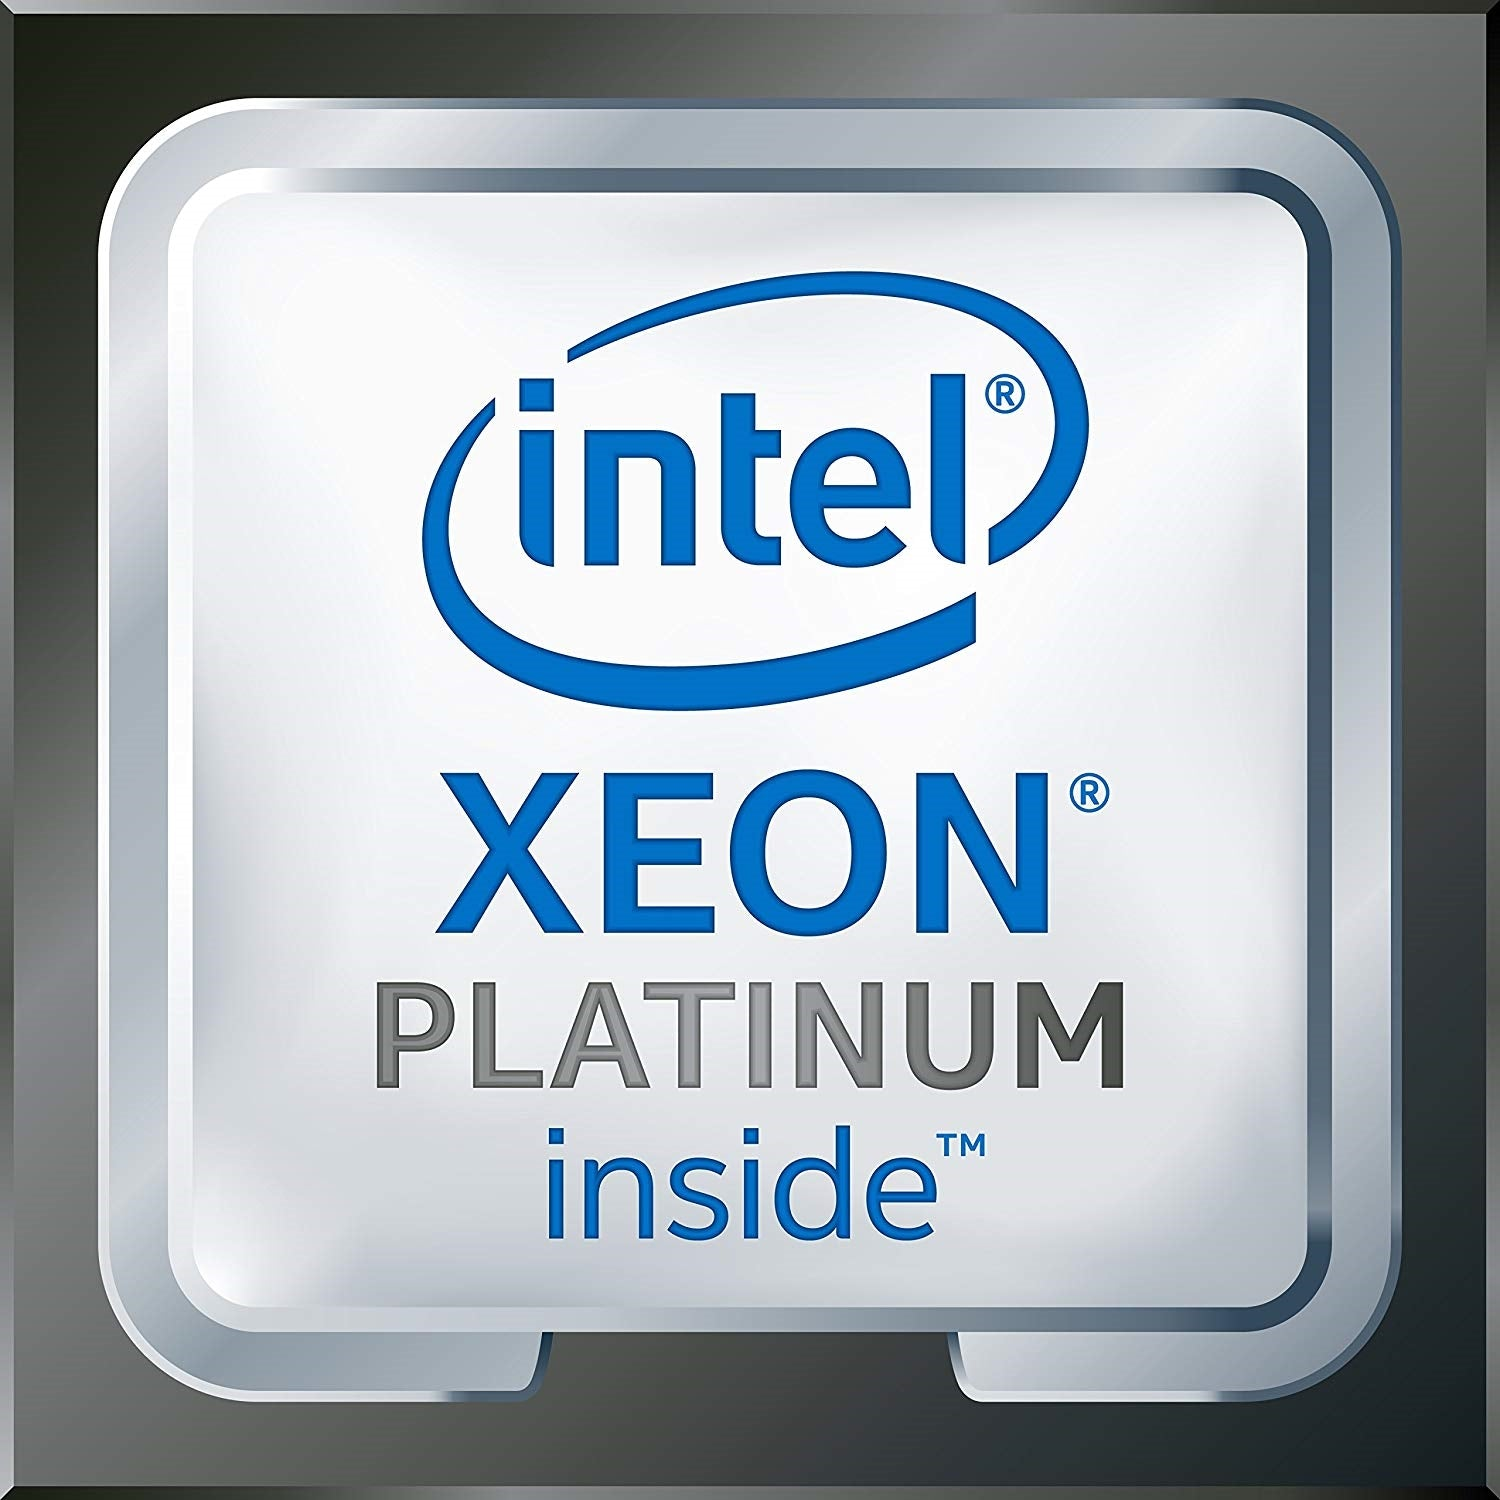 Intel Xeon Platinum 8280 28-Core 2.70GHz 39MB Cache Socket FCLGA3647 (SRF9P) Server Processor